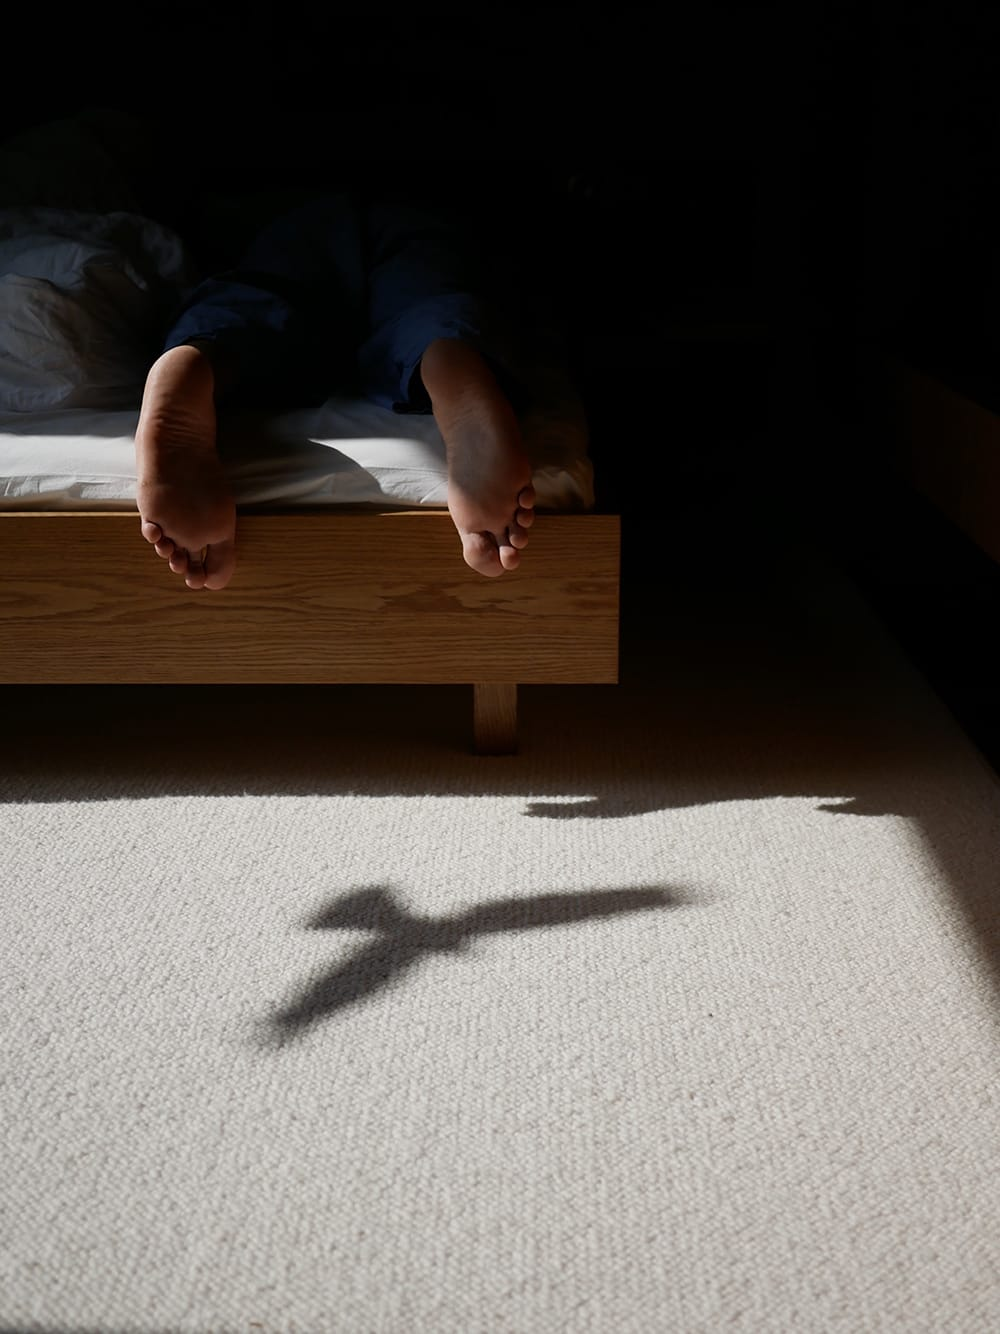 Men feet on a bed with a bird shadow next to them.